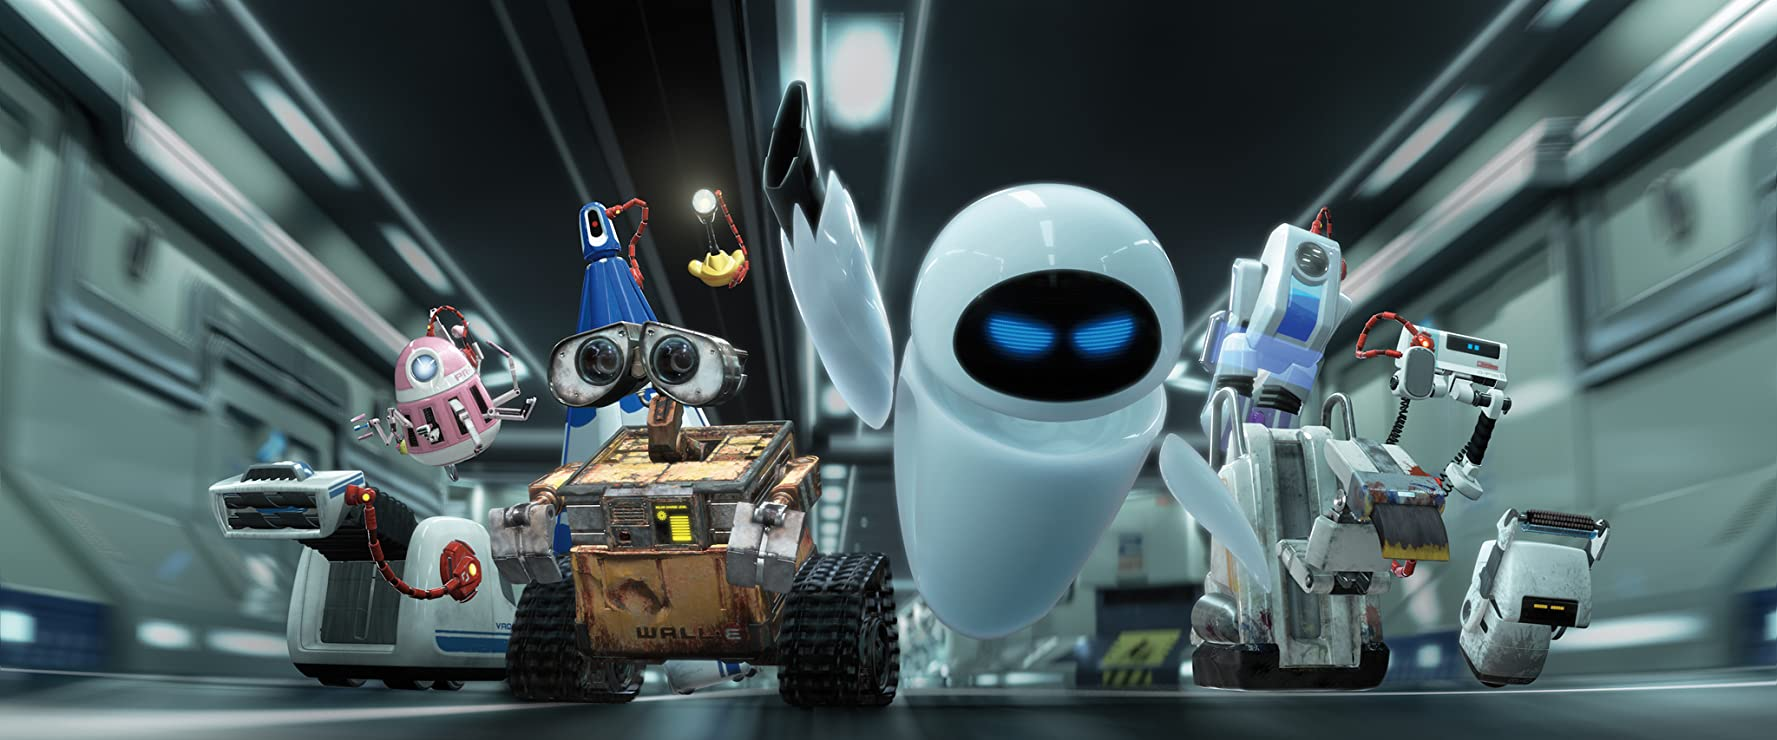 Ben Burtt and Elissa Knight in WALL·E (2008)